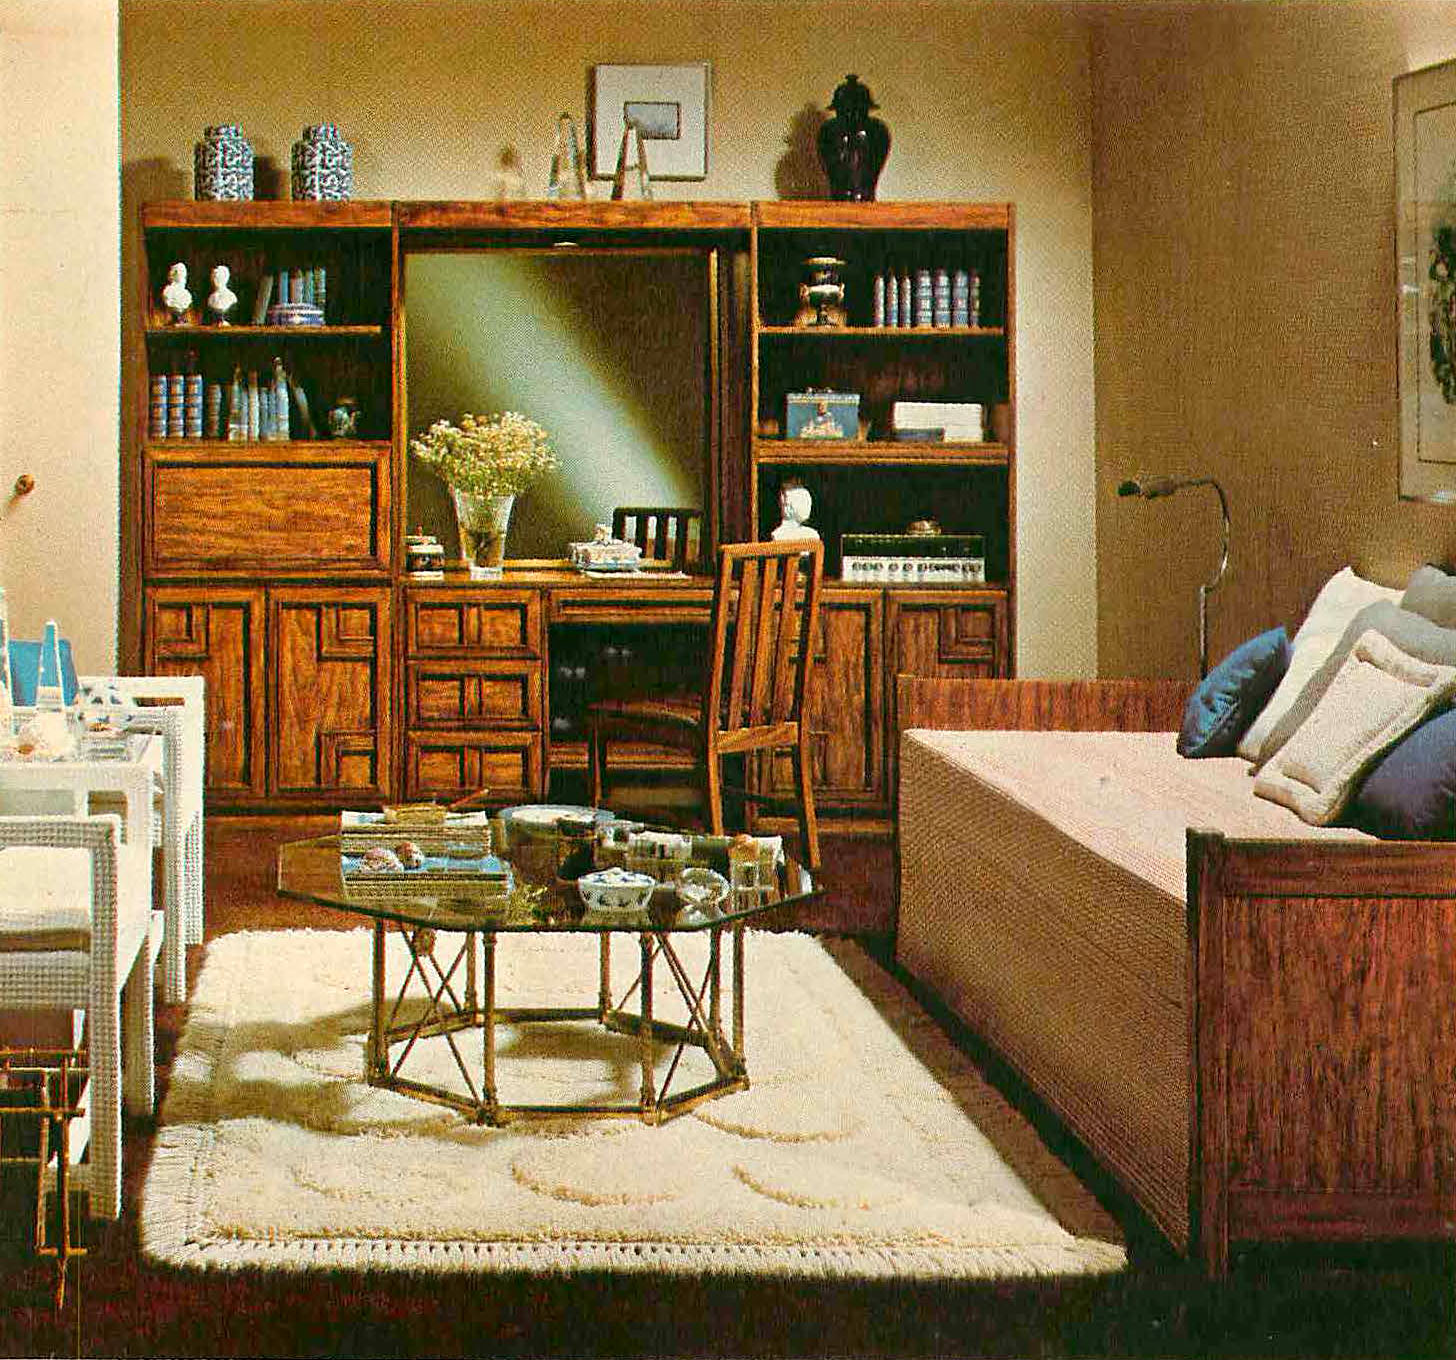 Pages from Homeowners How To Vol 03 No 5 Sep-Oct 1978 {PDF}-3_Page_4c